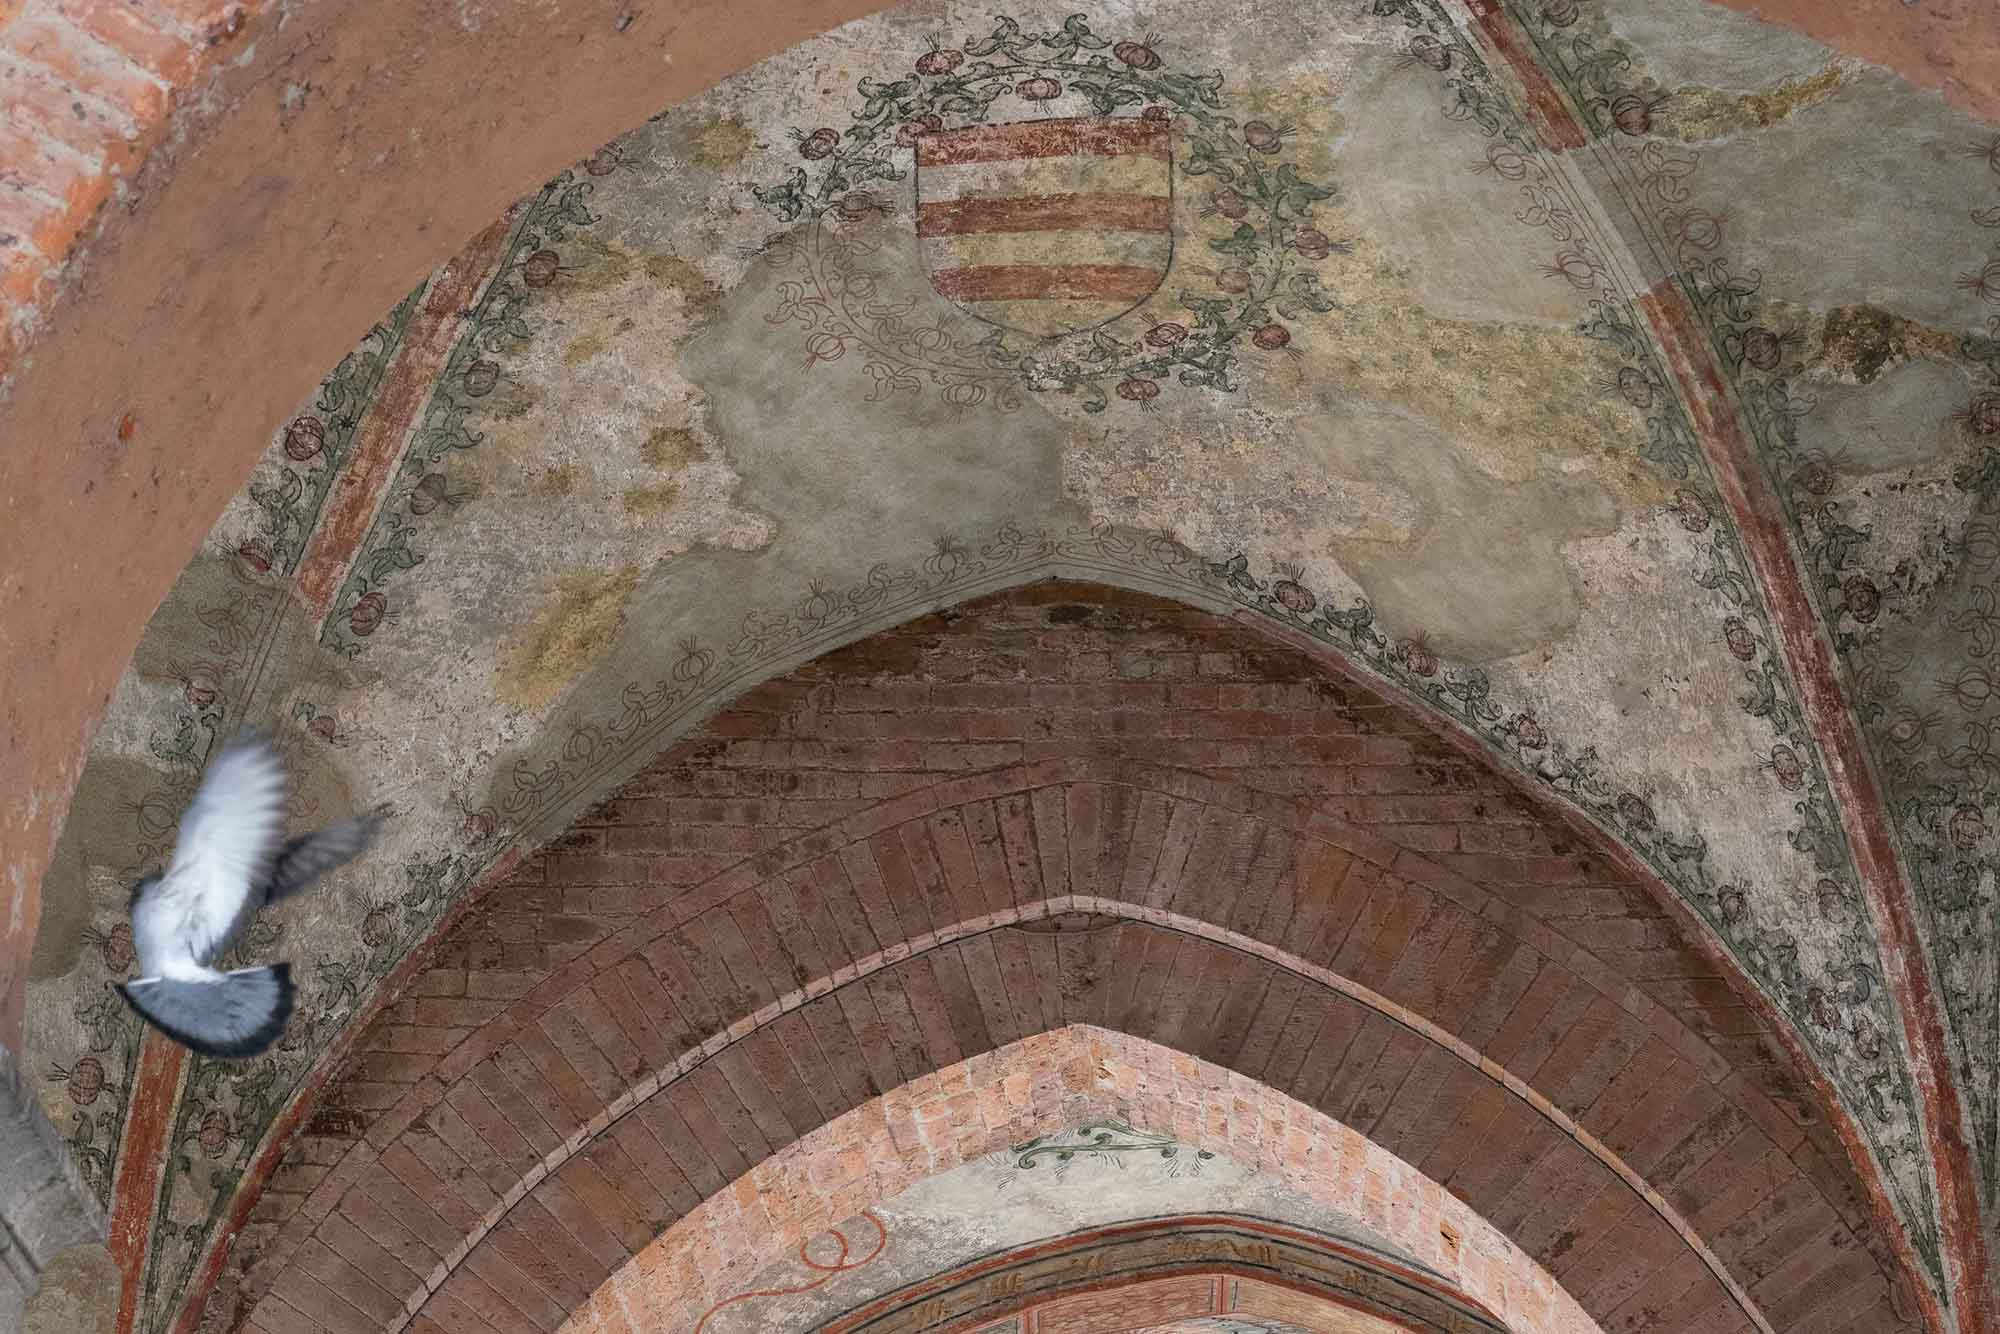 A bird takes flight near some frescoes in Cremona's Piazza del Comune.